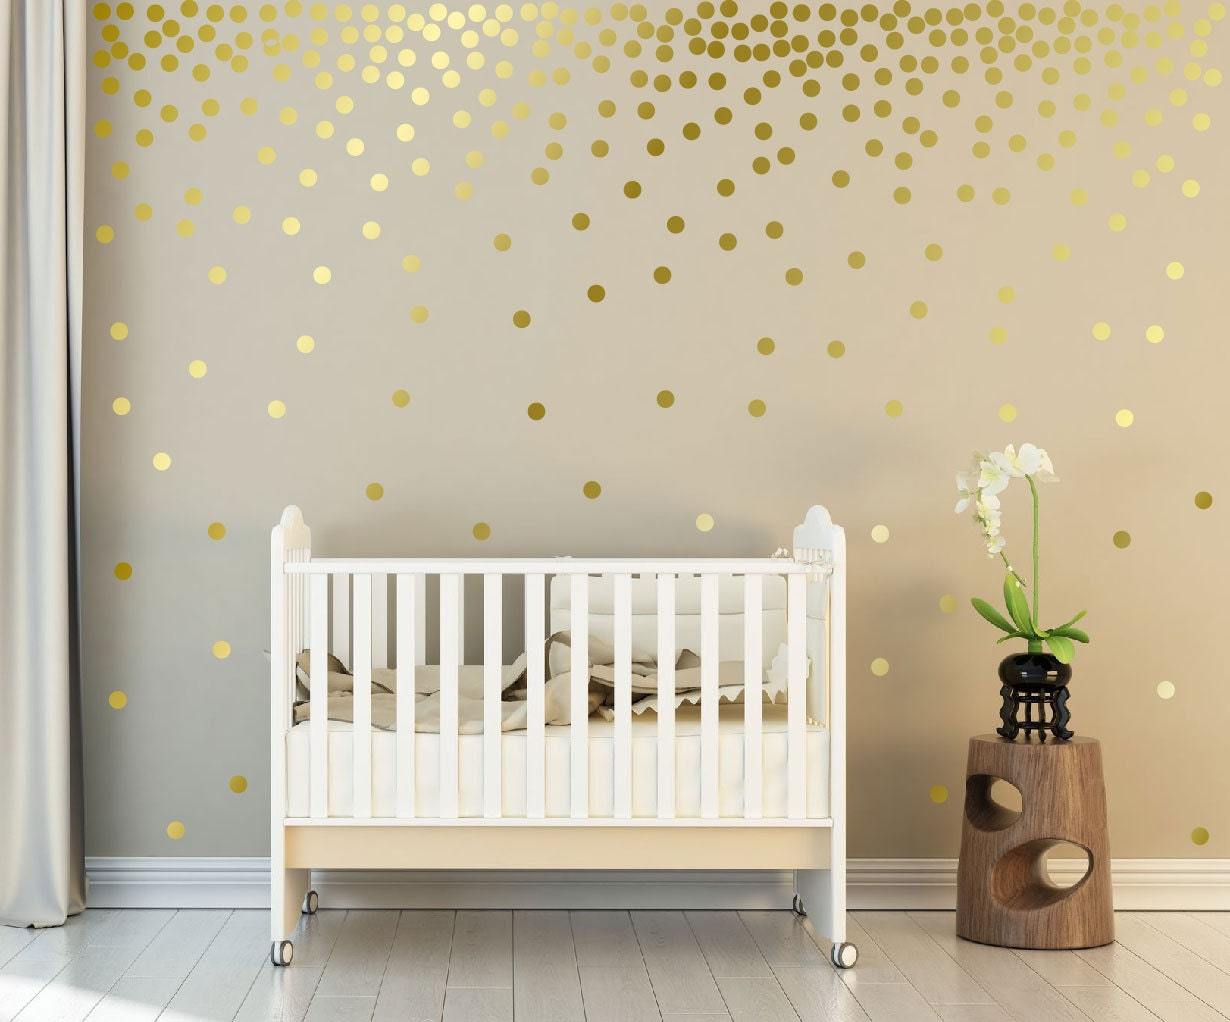 Metallic Gold Wall Decals Polka Dots Wall Decor   1 Inch, 1.5,2,2.5,3, 3.5,  4 Inches Circle Vinyl Decals Dot Wall Stickers